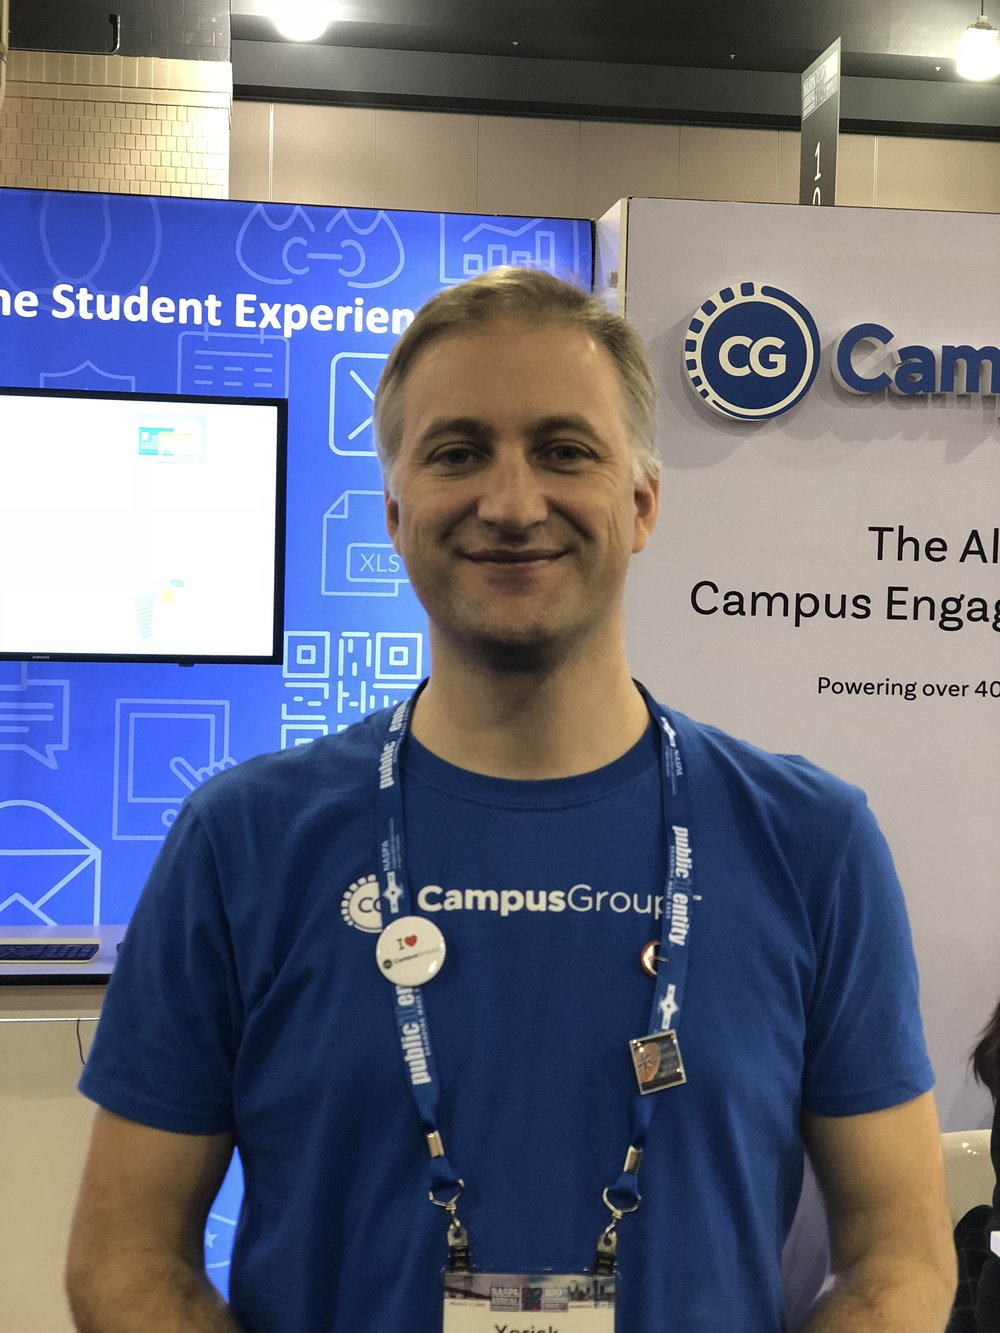 CampusGroups Founder and CEO, Yorick Ser, spoke with dozens of Student Affairs leaders about the challenges facing campuses today, and how to solve them together.